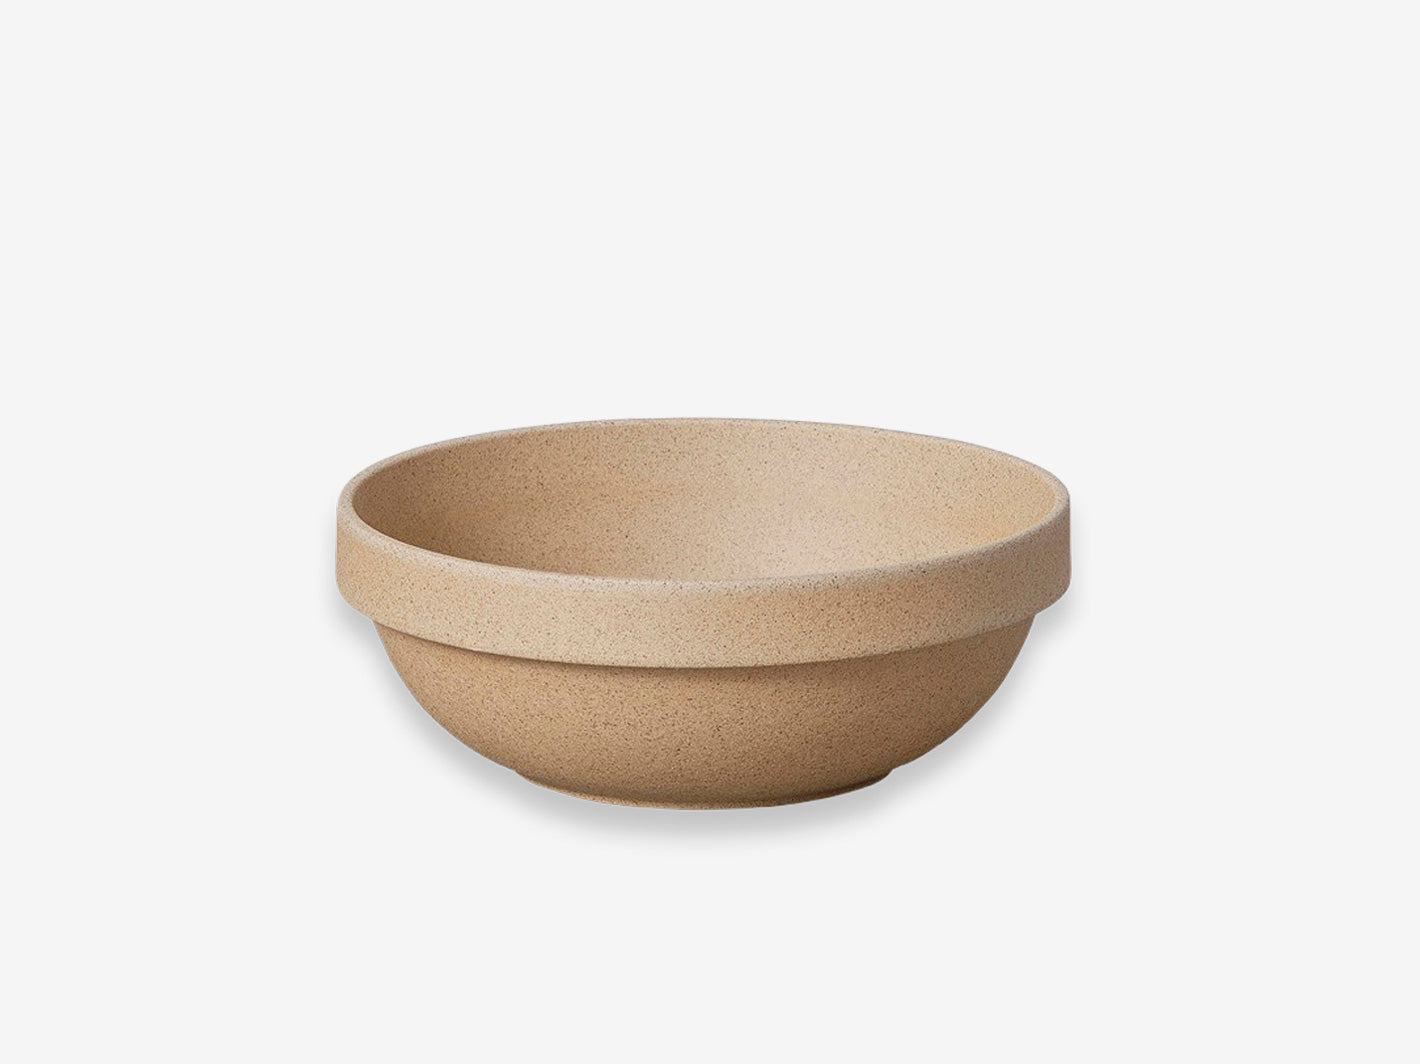 Bowl Round Natural 145x55